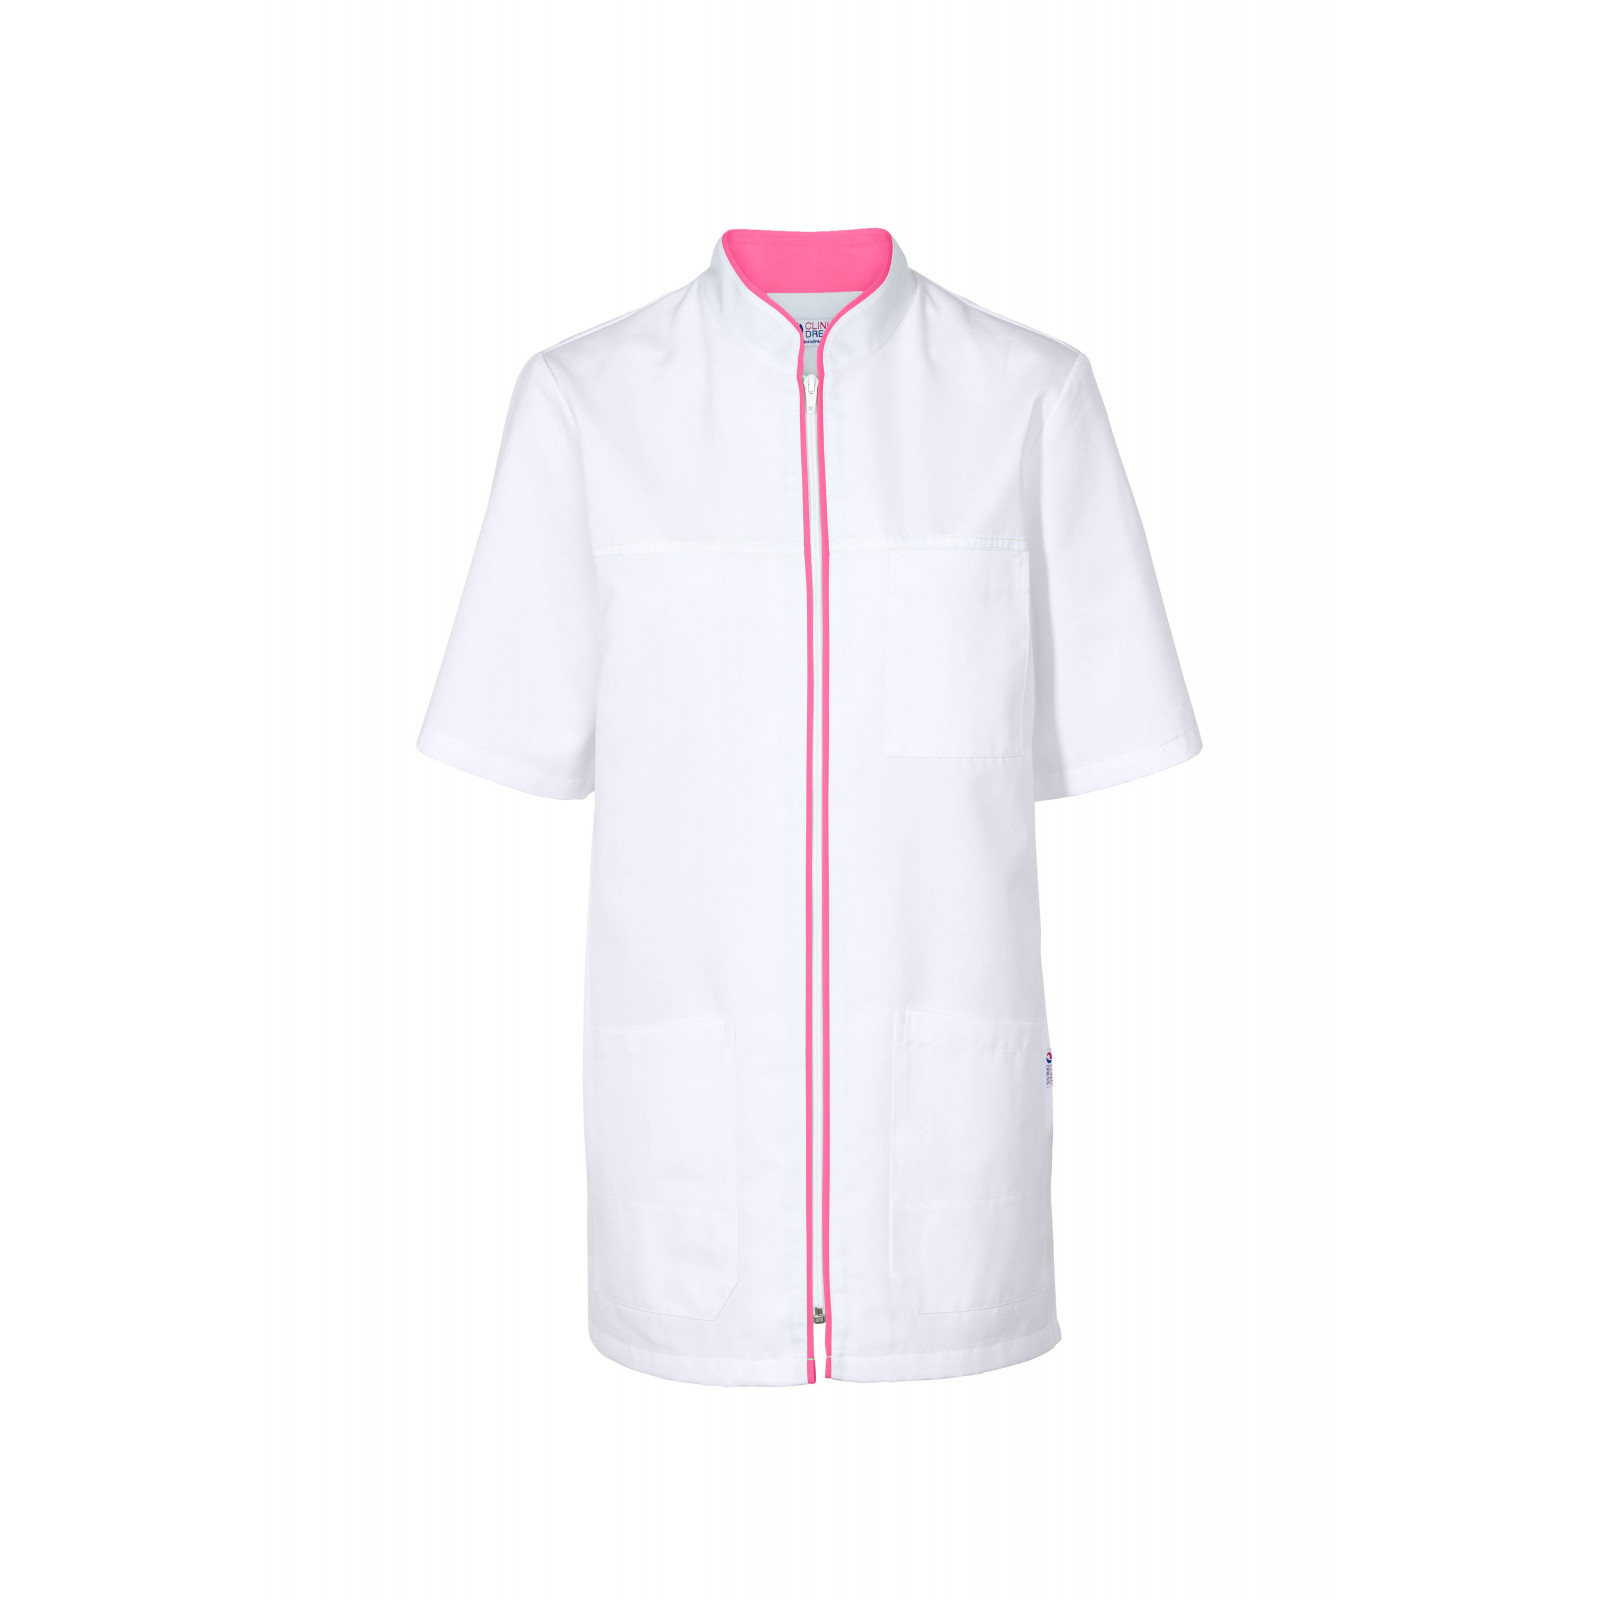 "Blouse médicale unisexe ""Sacha"", Clinic dress"